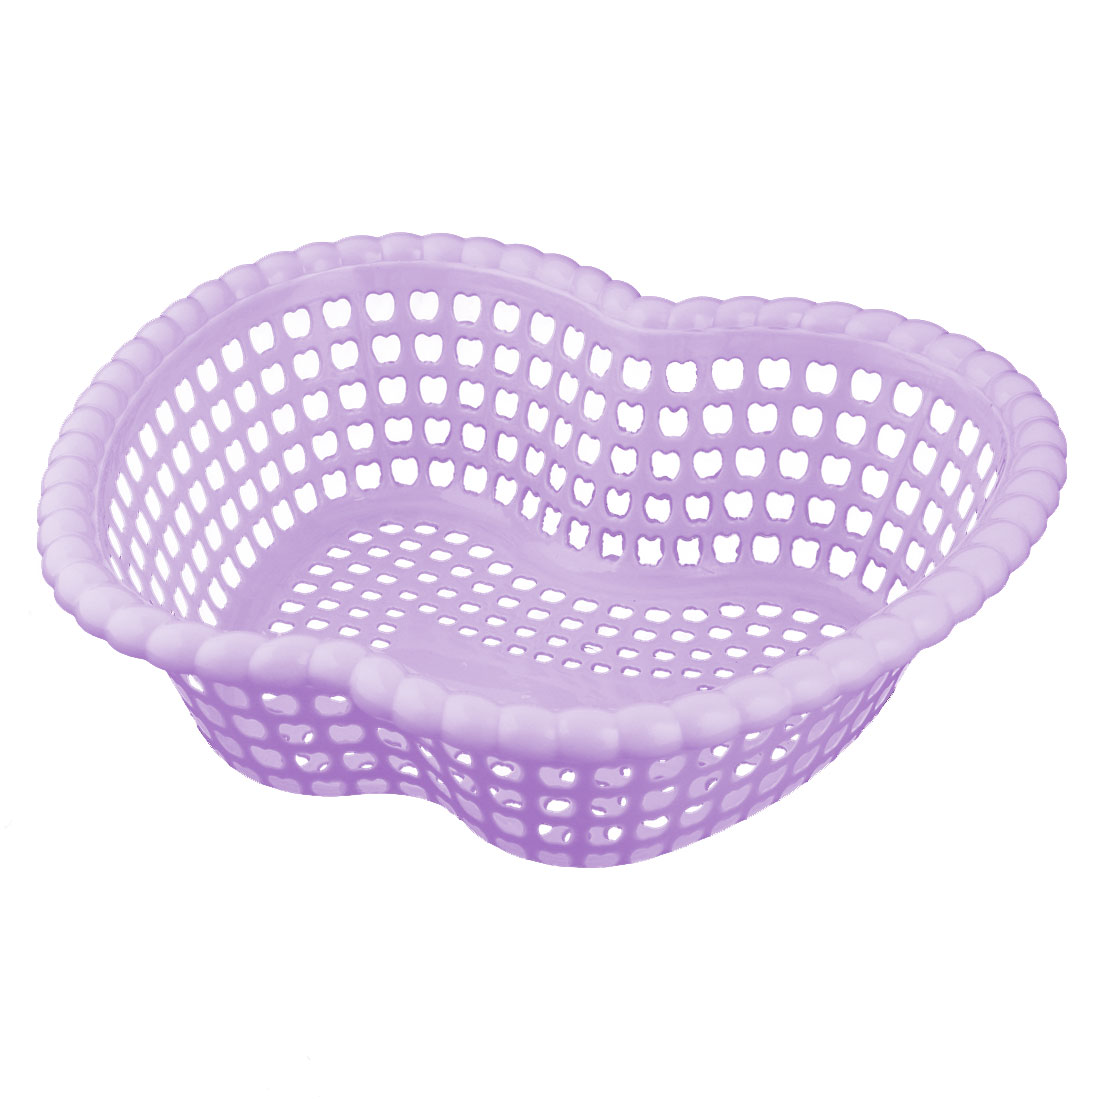 Family Plastic Apple Shaped Fruit Vegetable Holder Washing Basket Strainer Purple